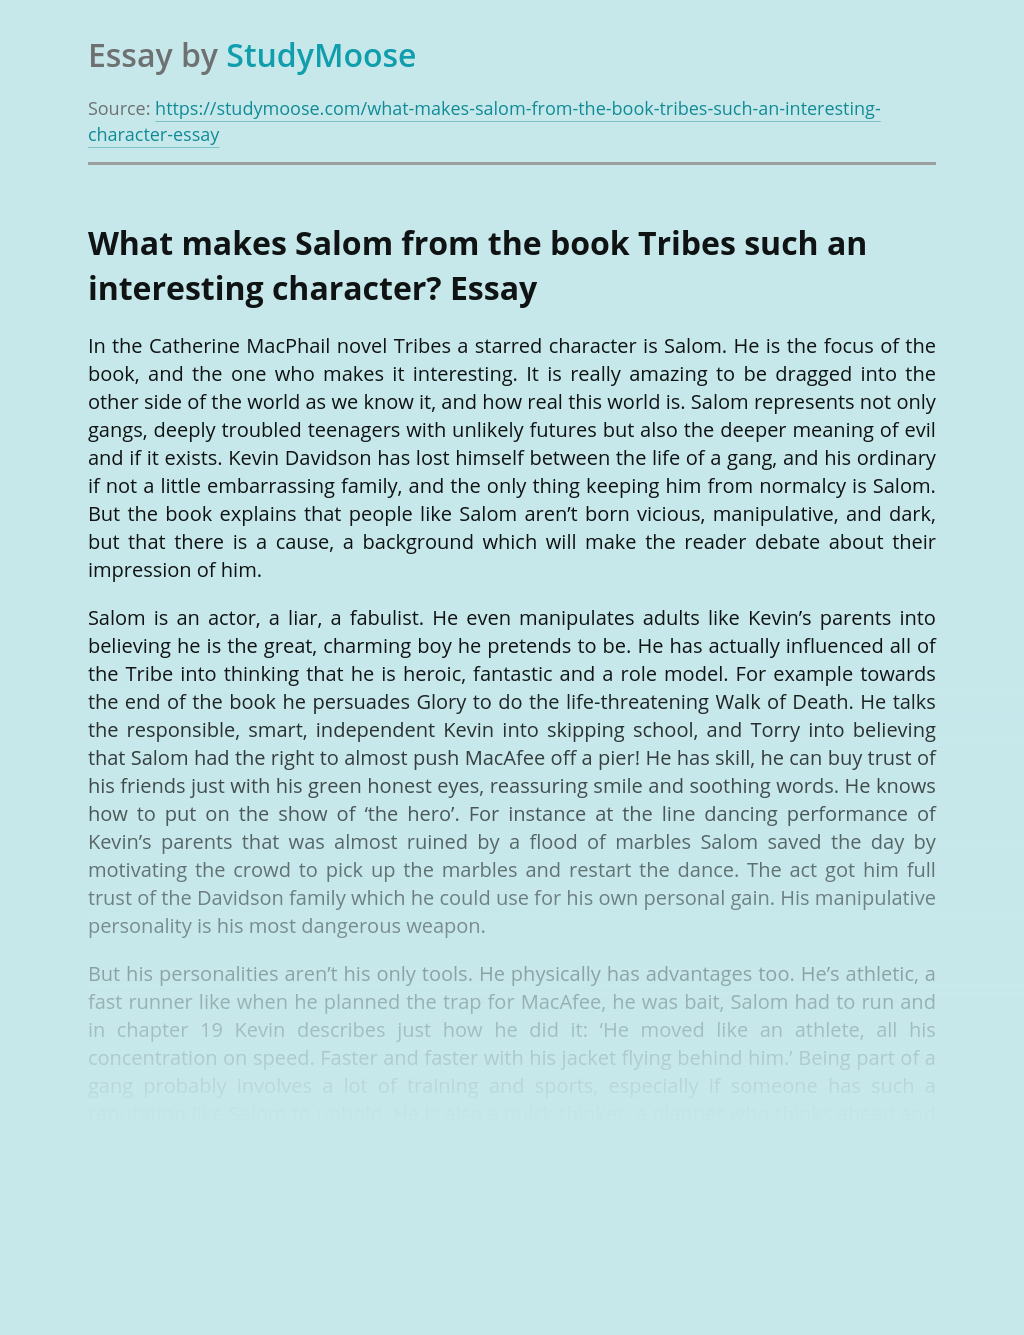 What makes Salom from the book Tribes such an interesting character?